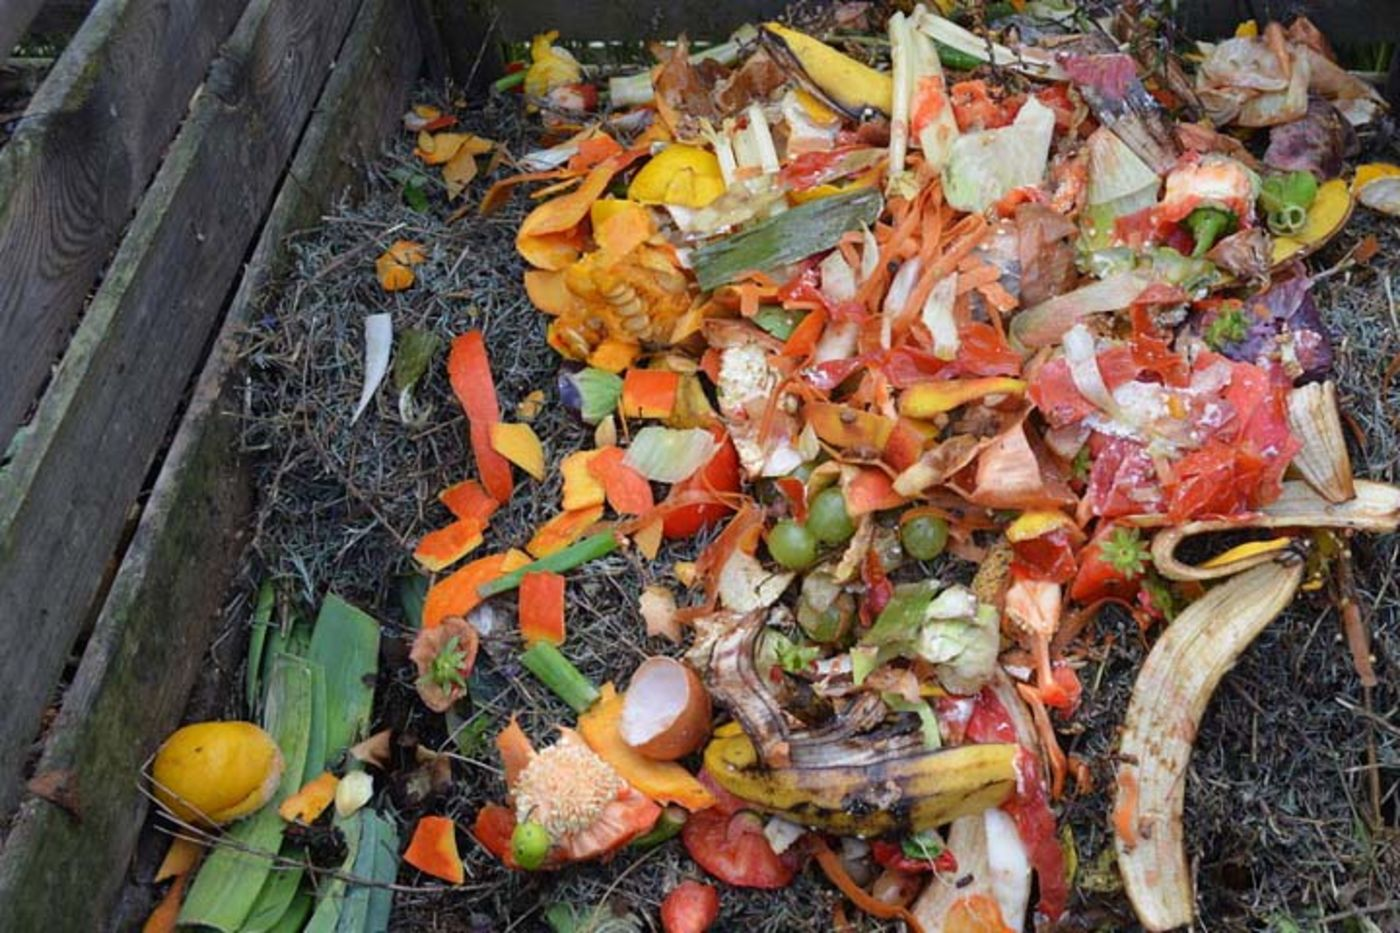 A variety of colorful fruits and vegetables in a wooden compost bin, along with pin needles and other natural materials